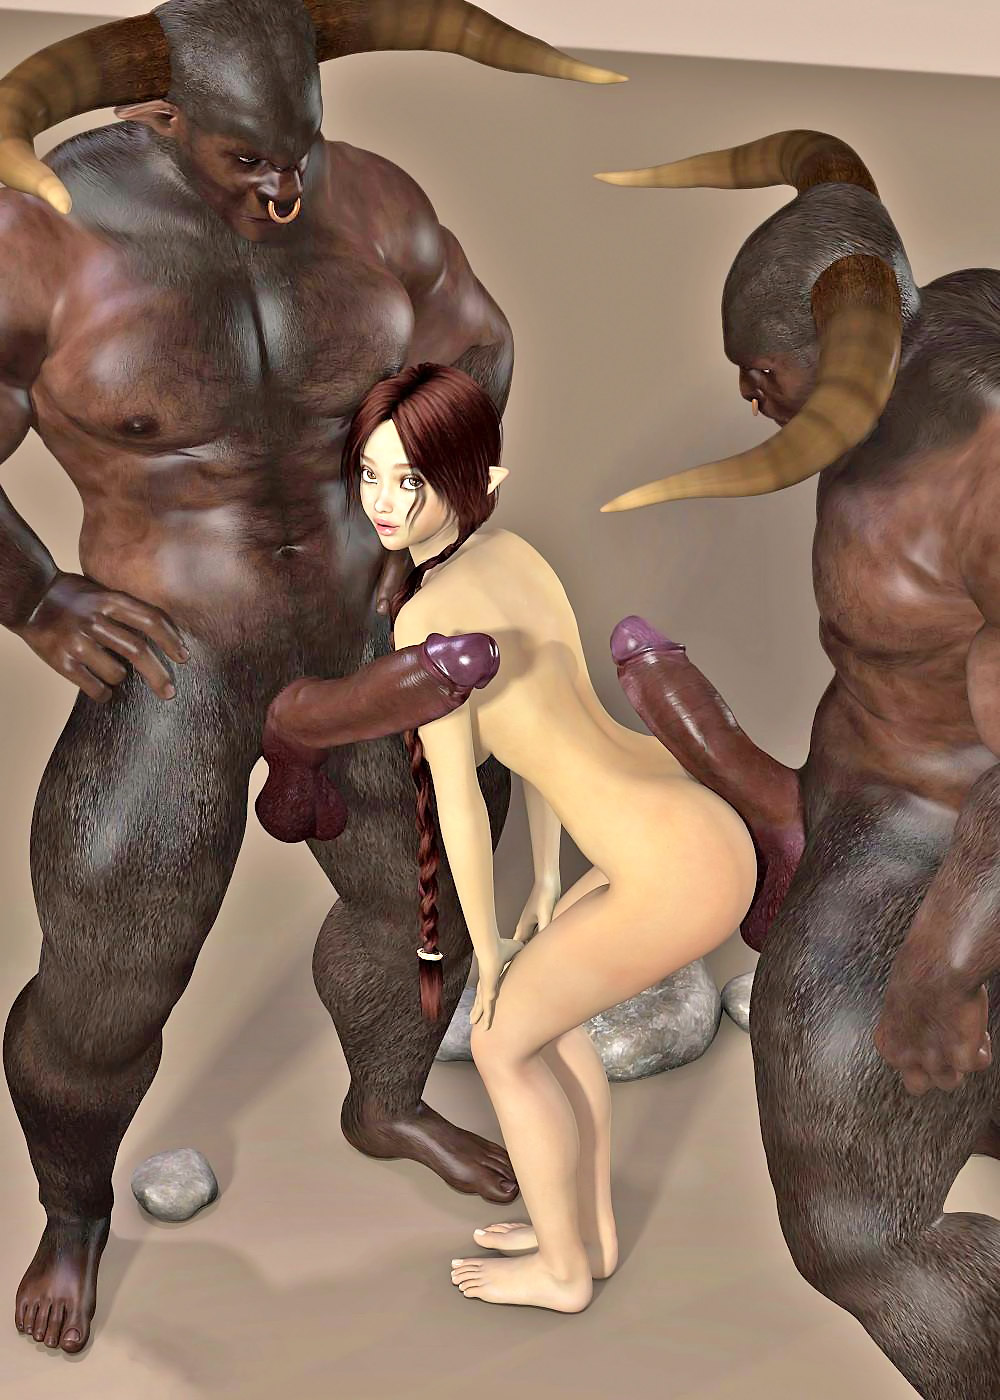 3d minotaur fucks girl cartoon pornstar